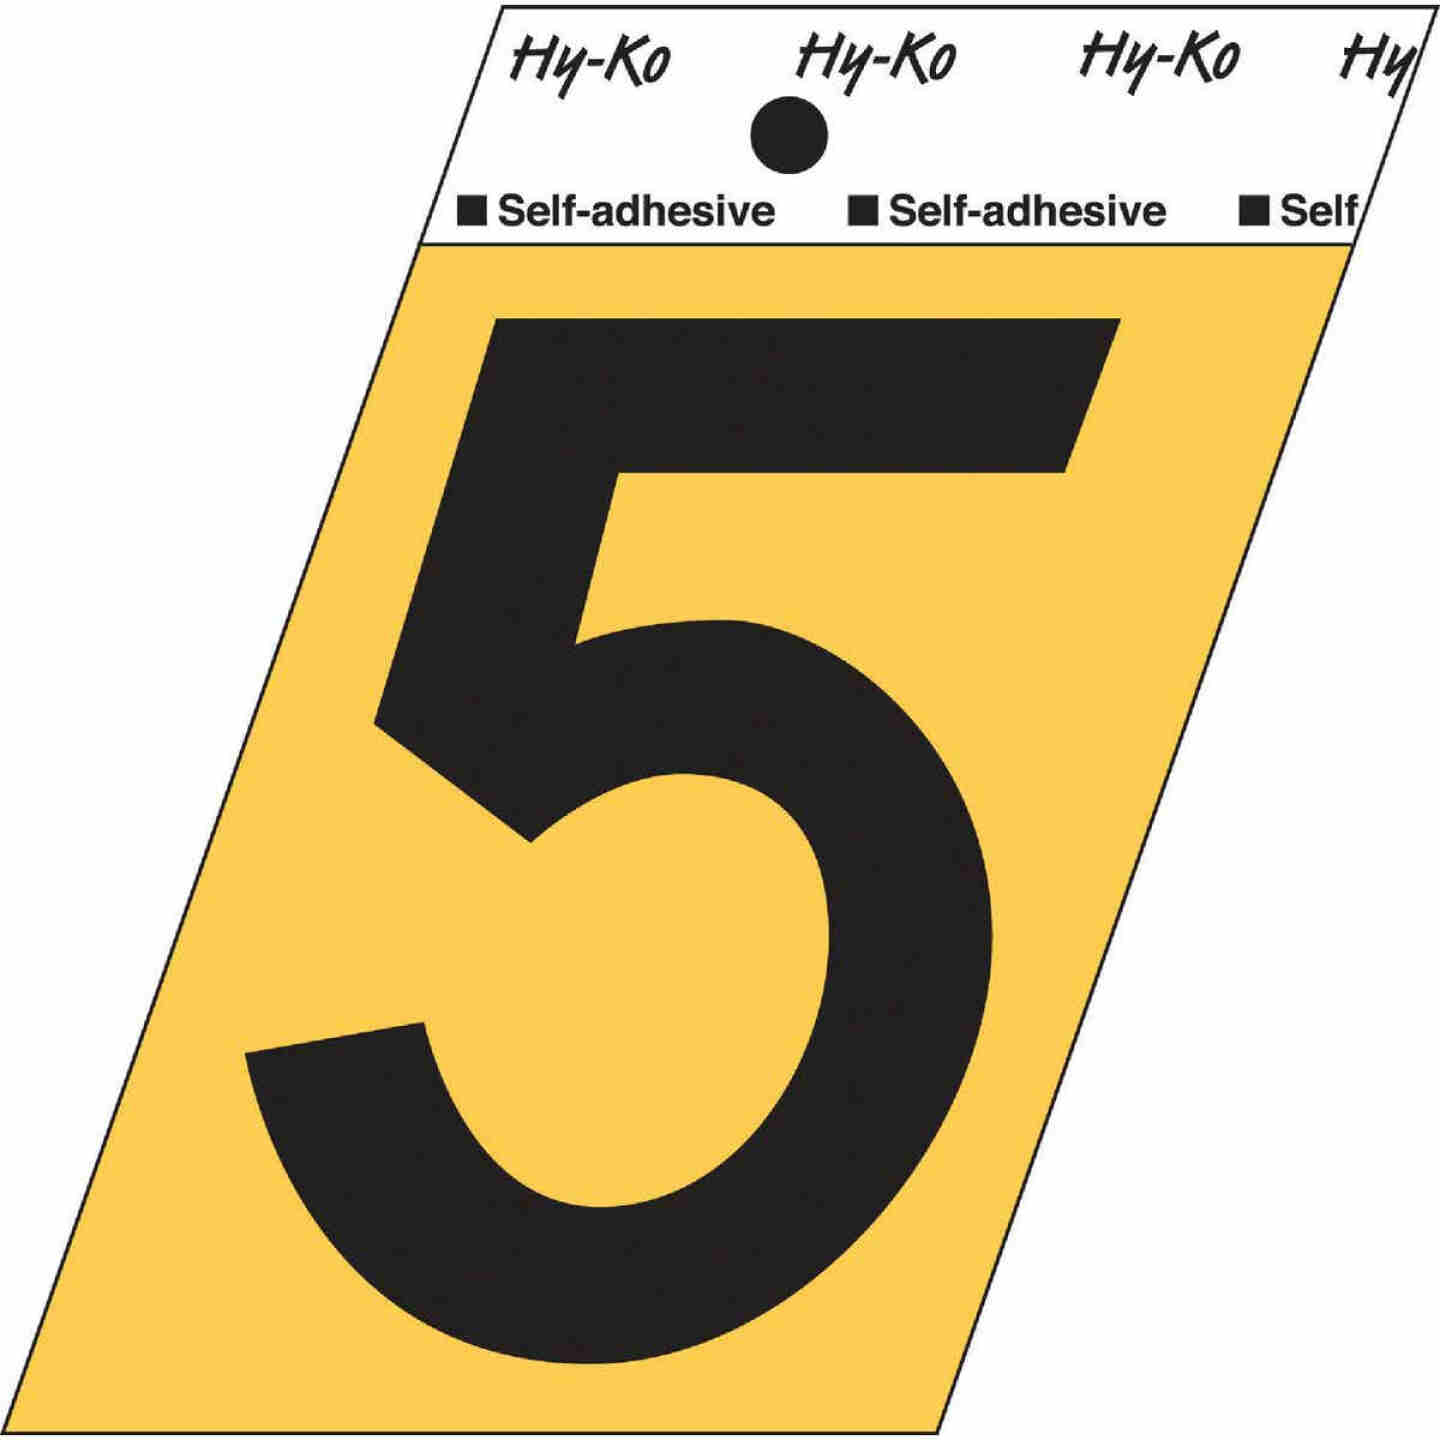 Hy-Ko Aluminum 3-1/2 In. Non-Reflective Adhesive Number Five Image 1